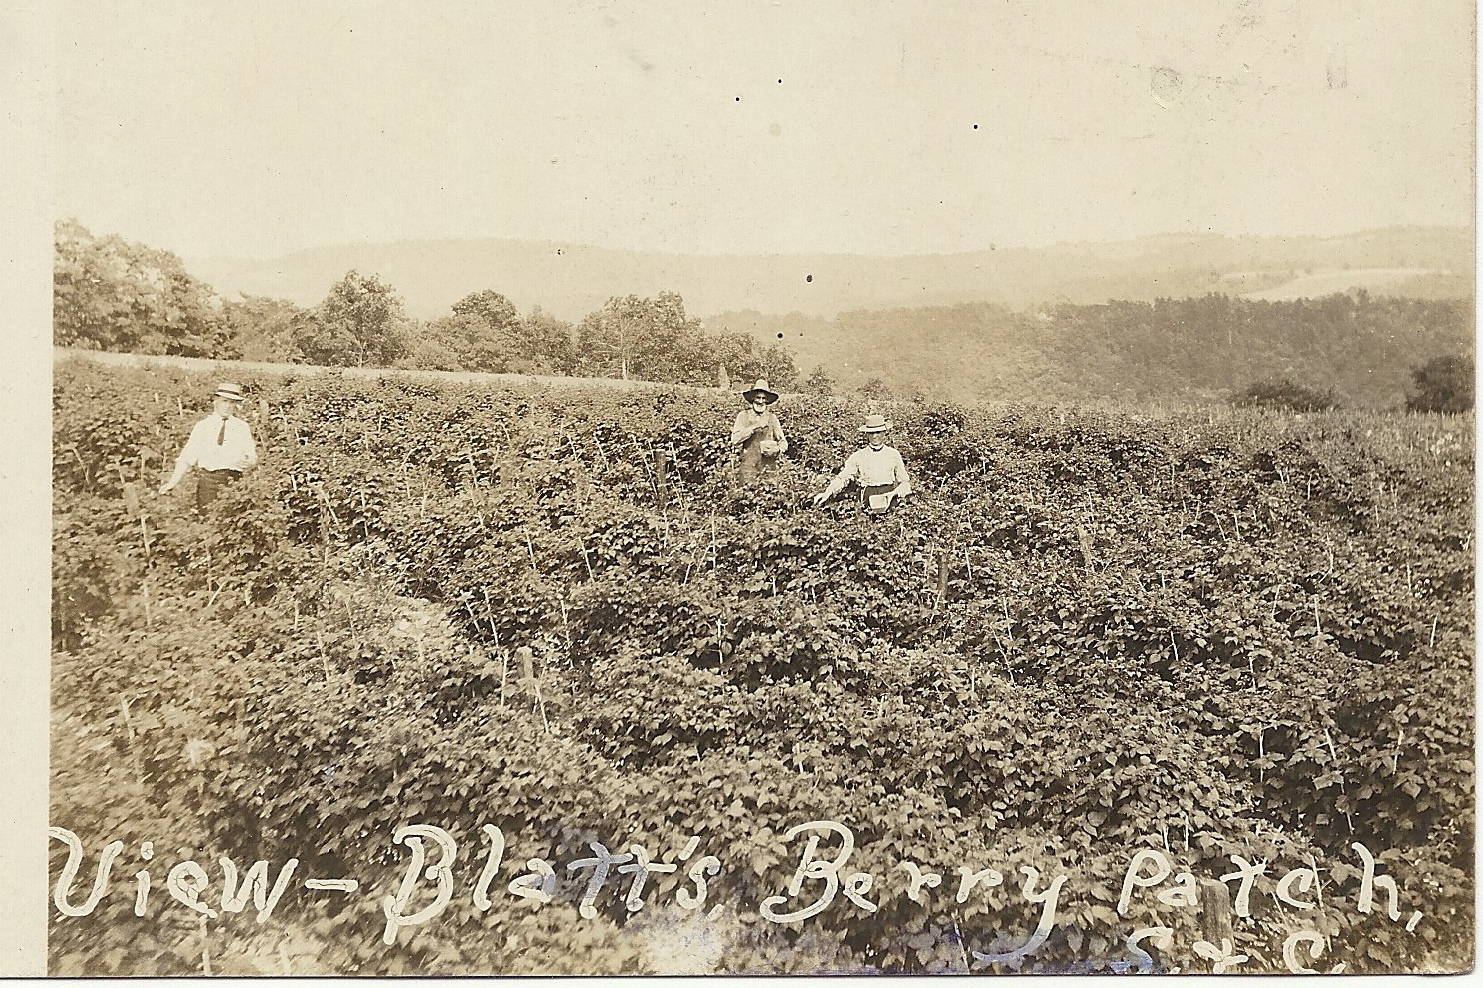 View of Blatt's Berry Patch